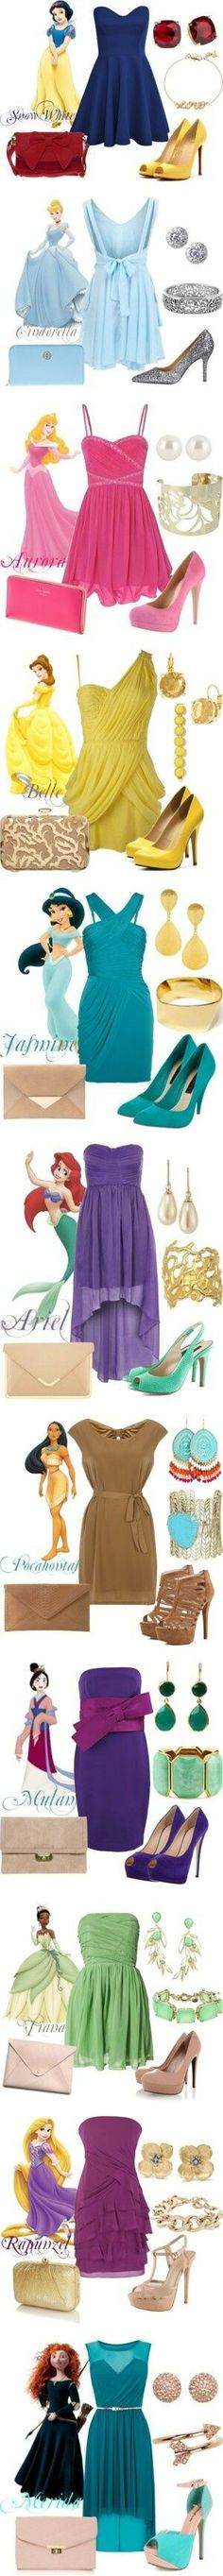 Disney Princess attires